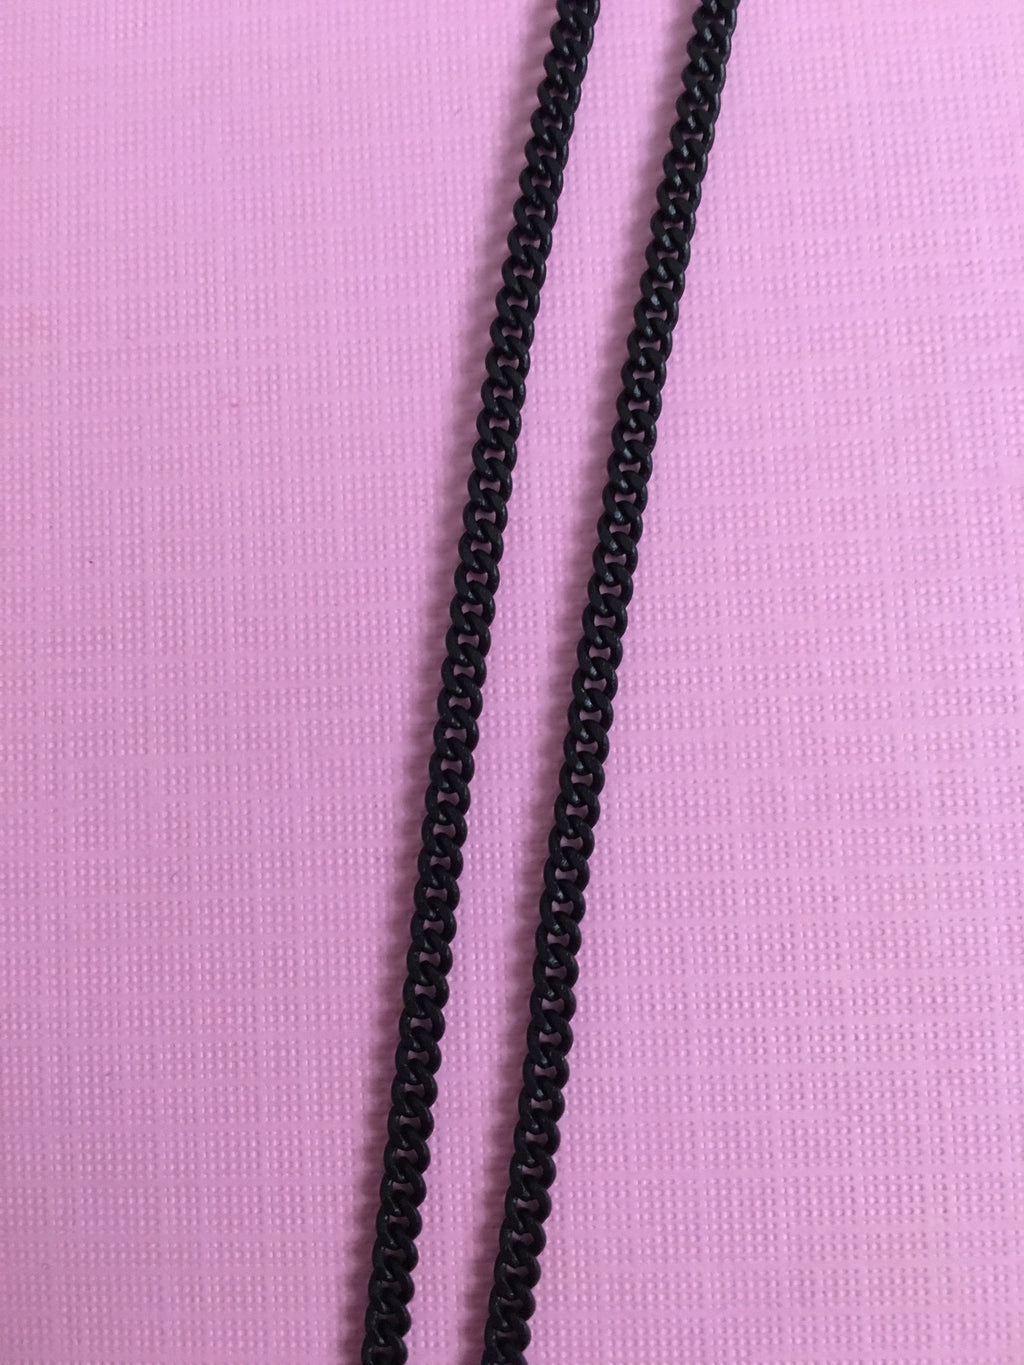 Medium sized Black Chain - TheCrystalFairy